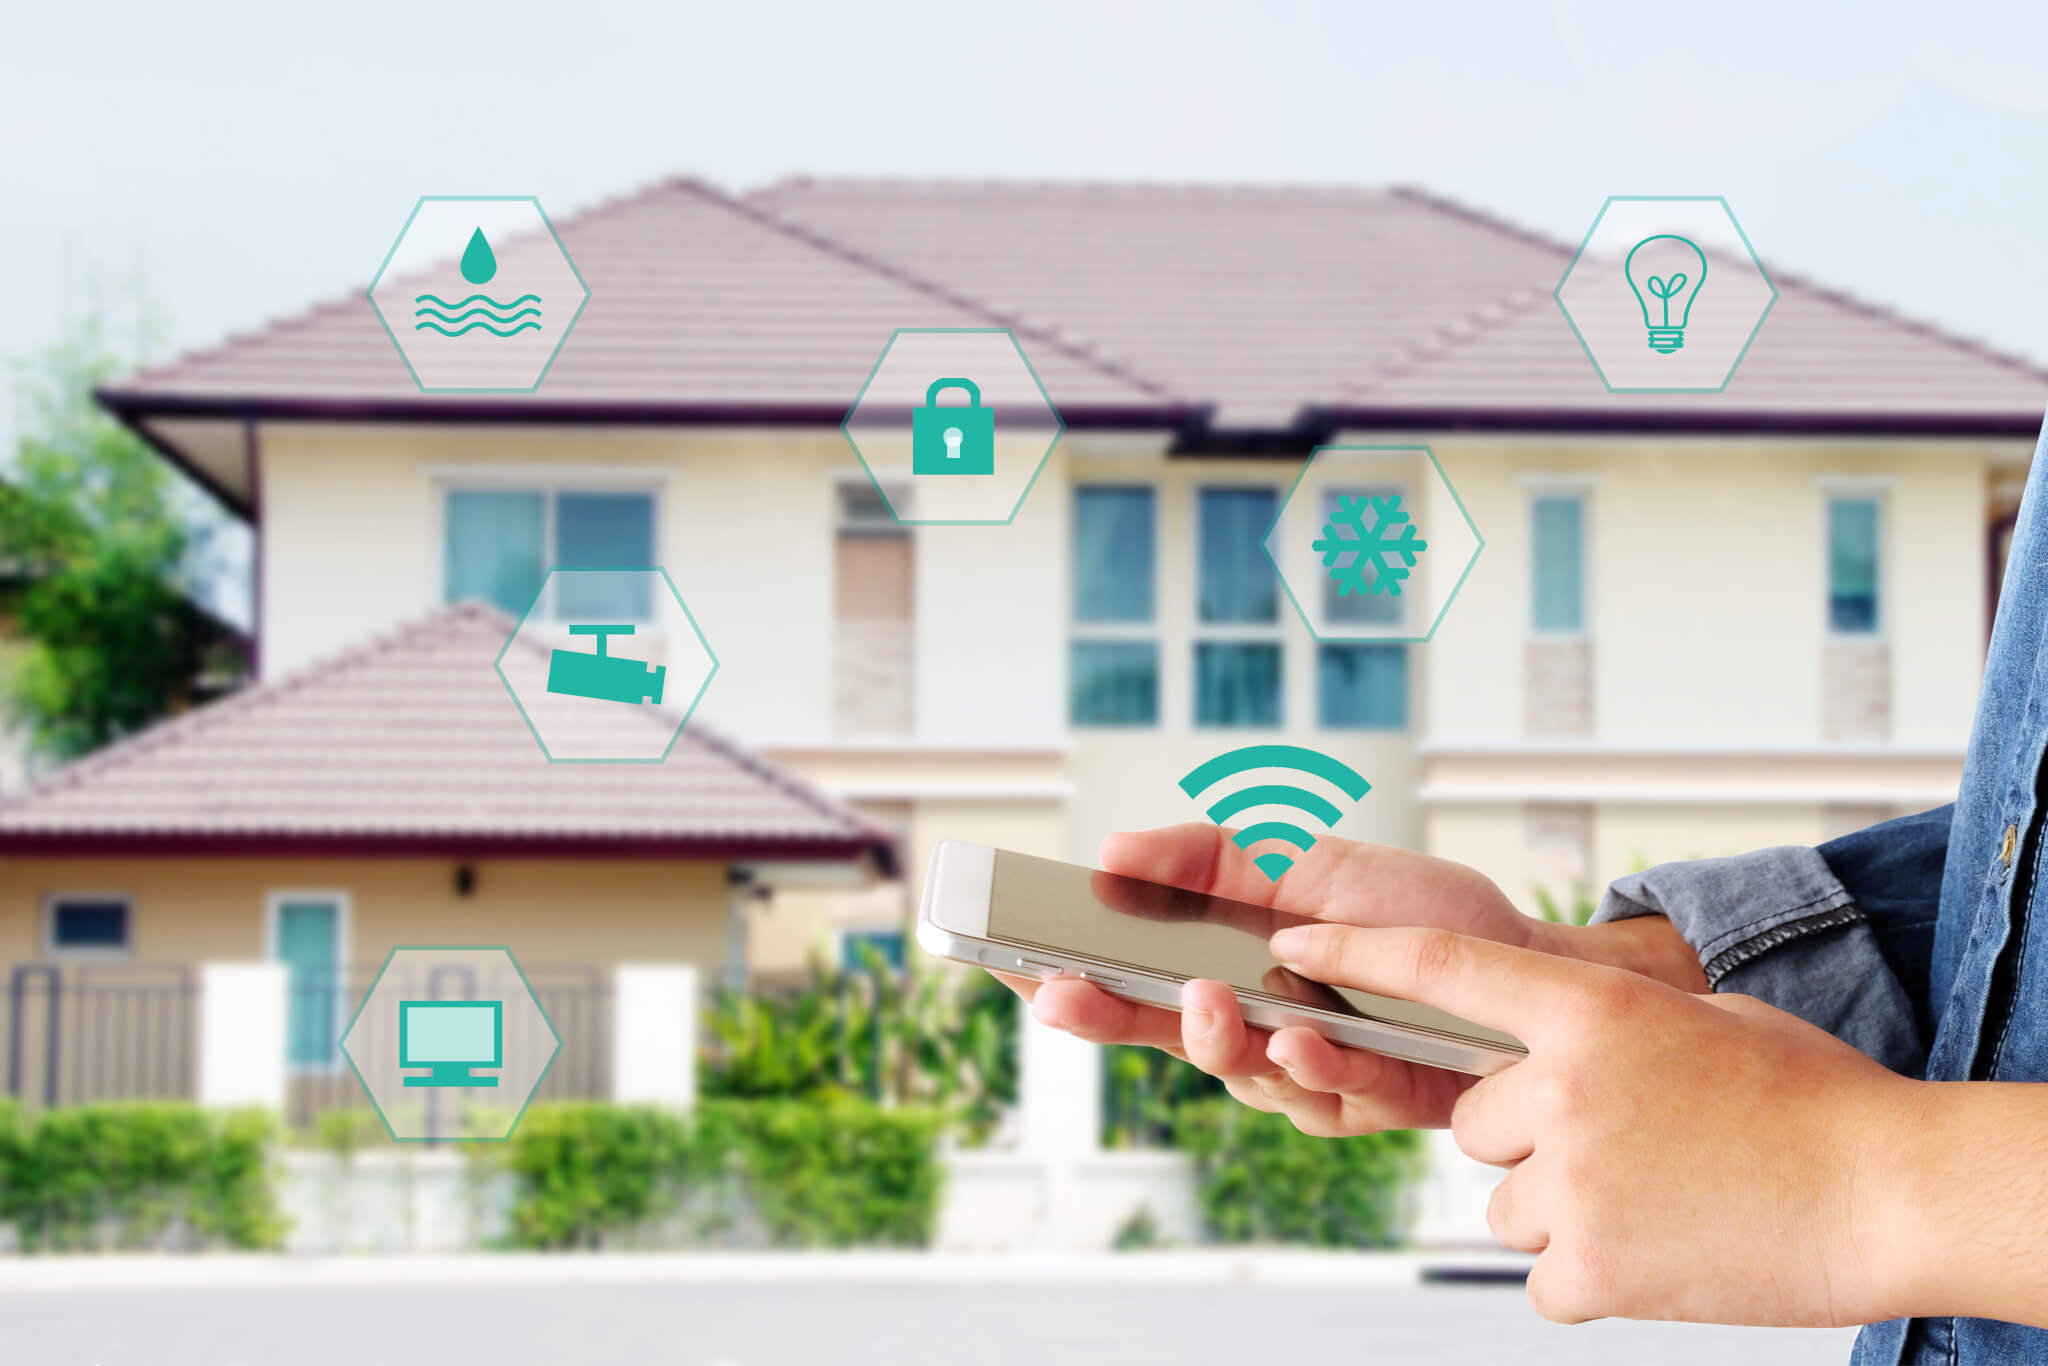 Make guests feel safe with security sensors